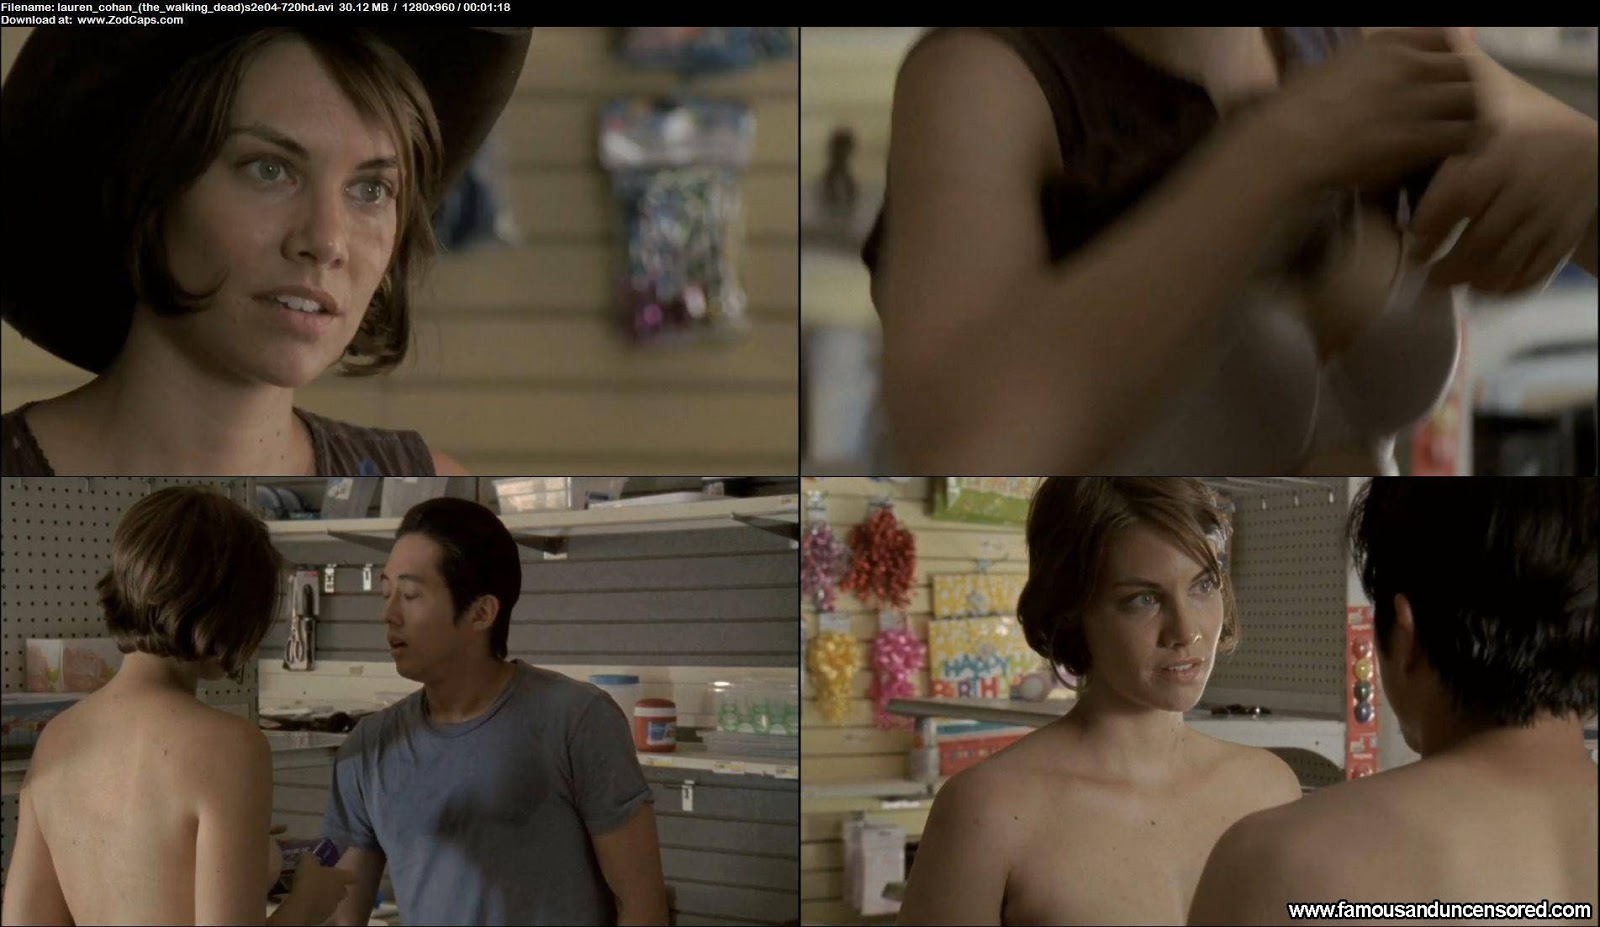 The Walking Dead Nude Scene